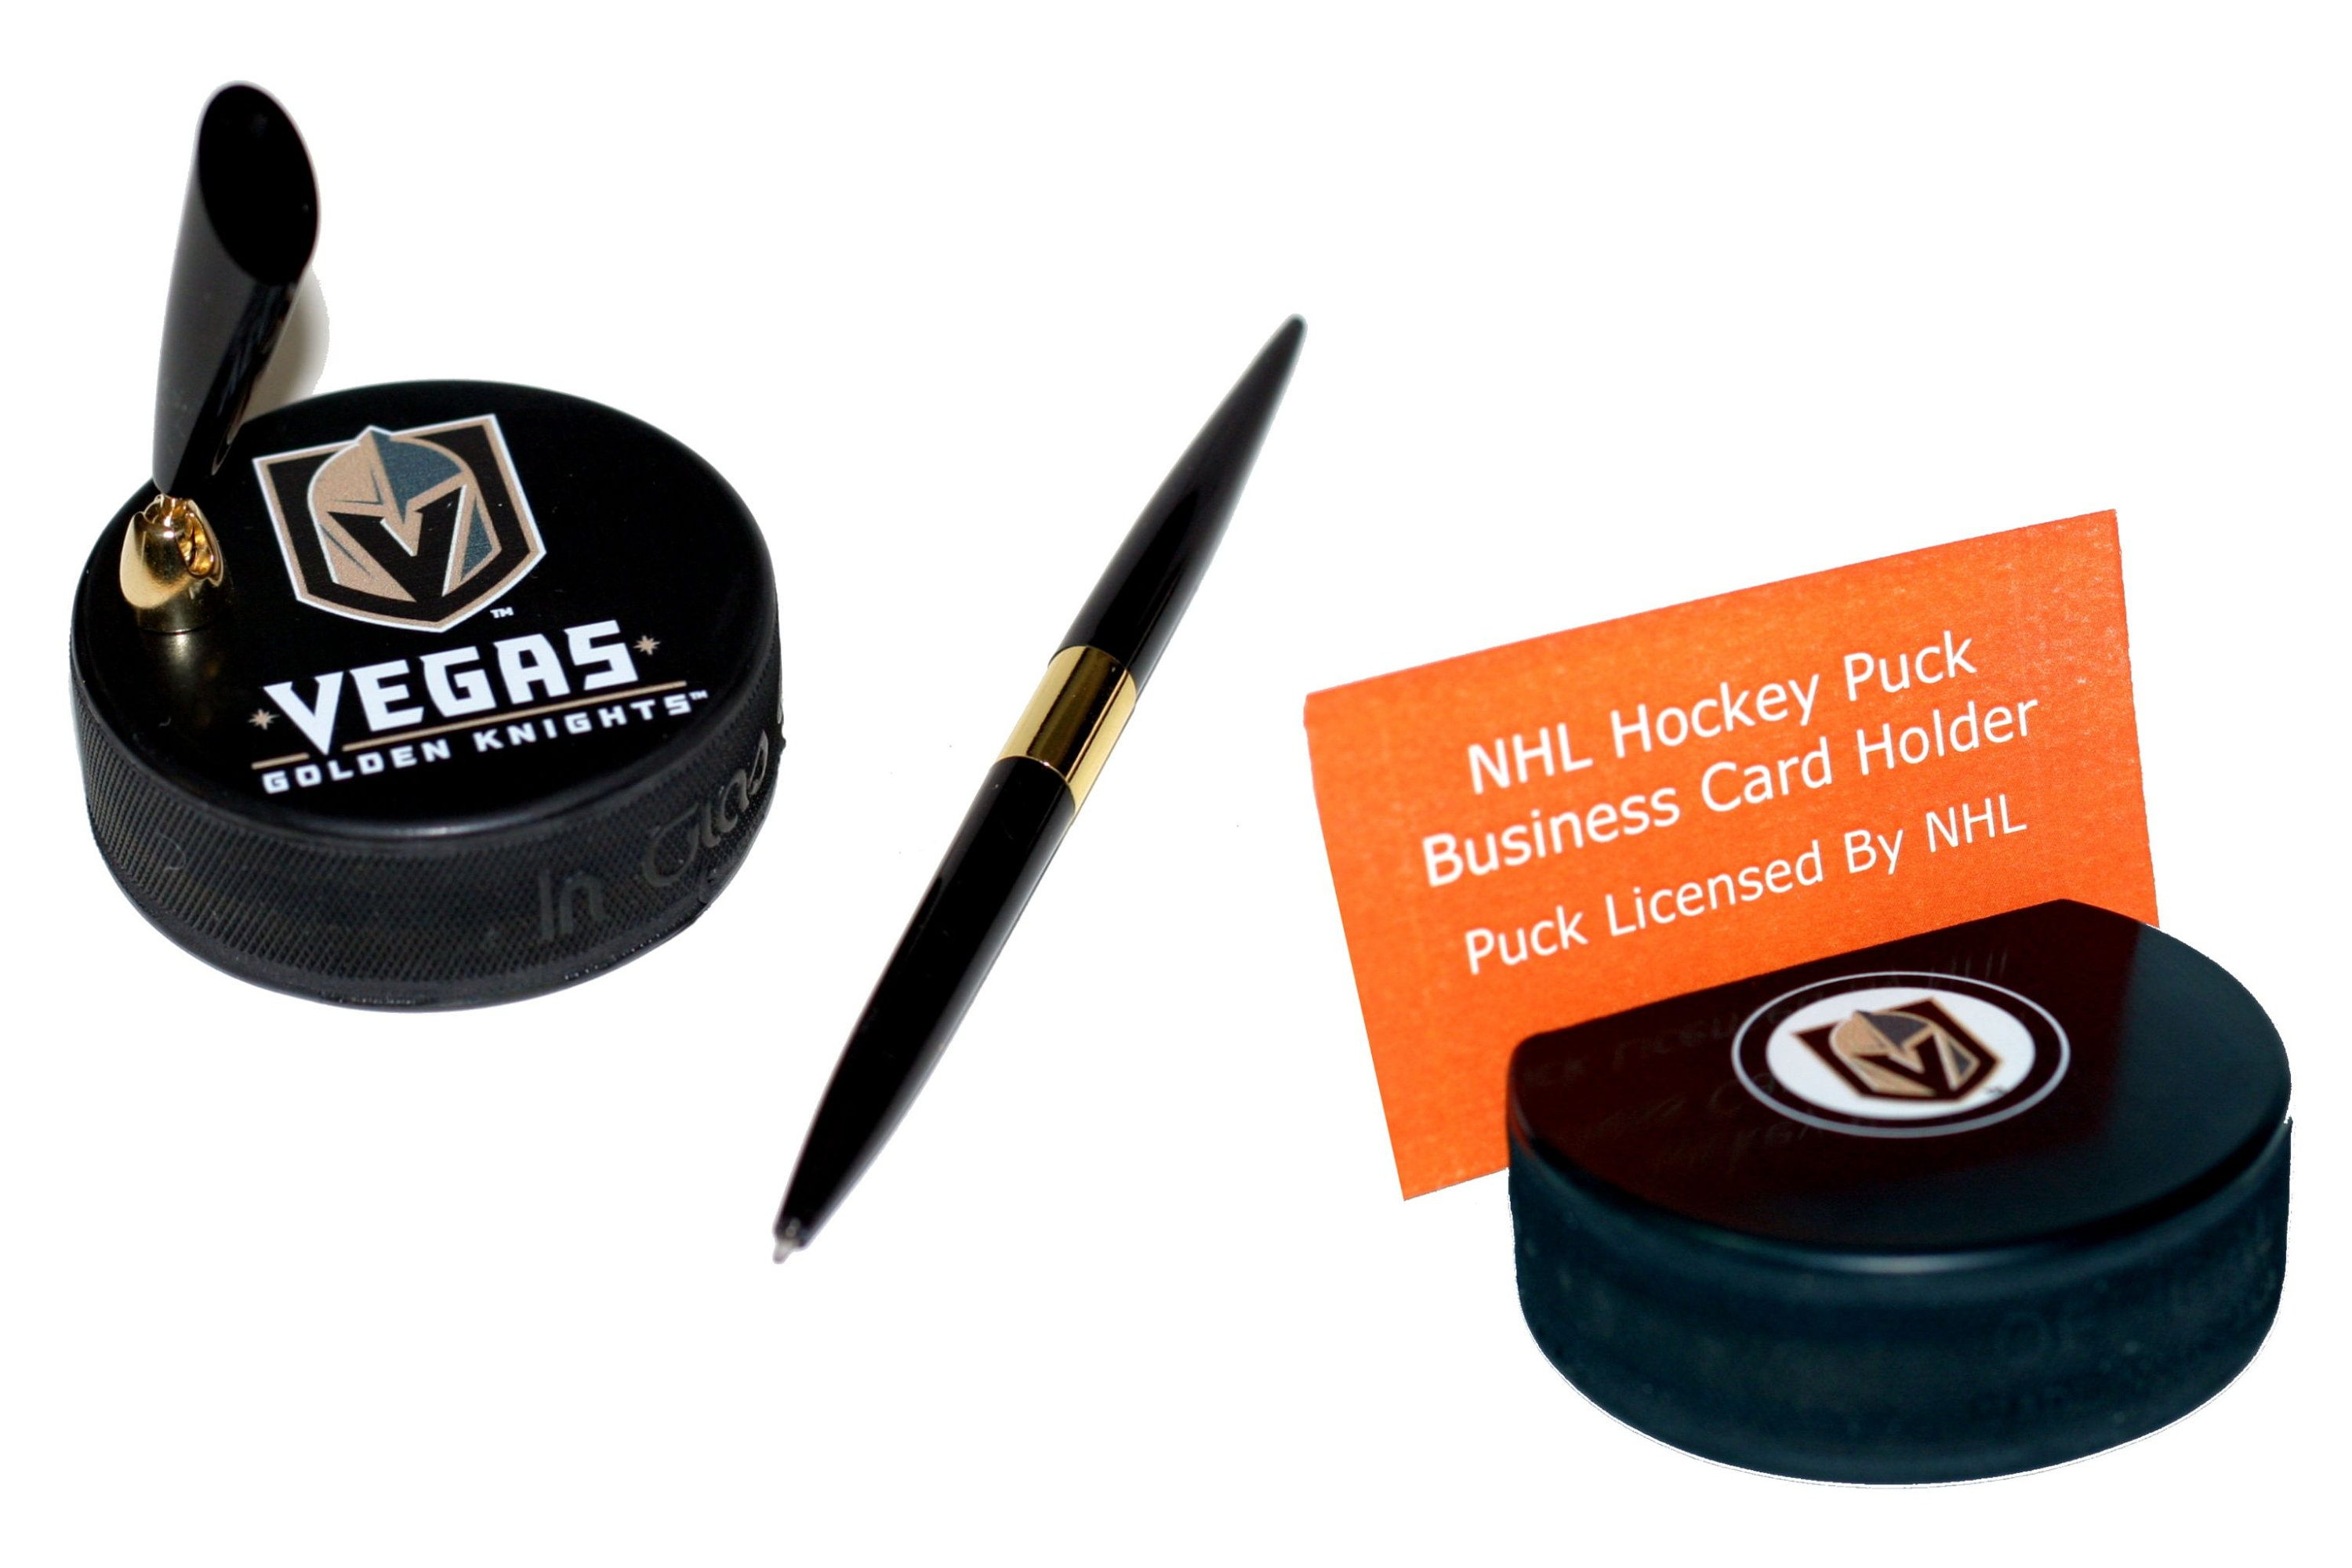 Las Vegas Golden Knights Hockey Puck Pen Holder And Business Card